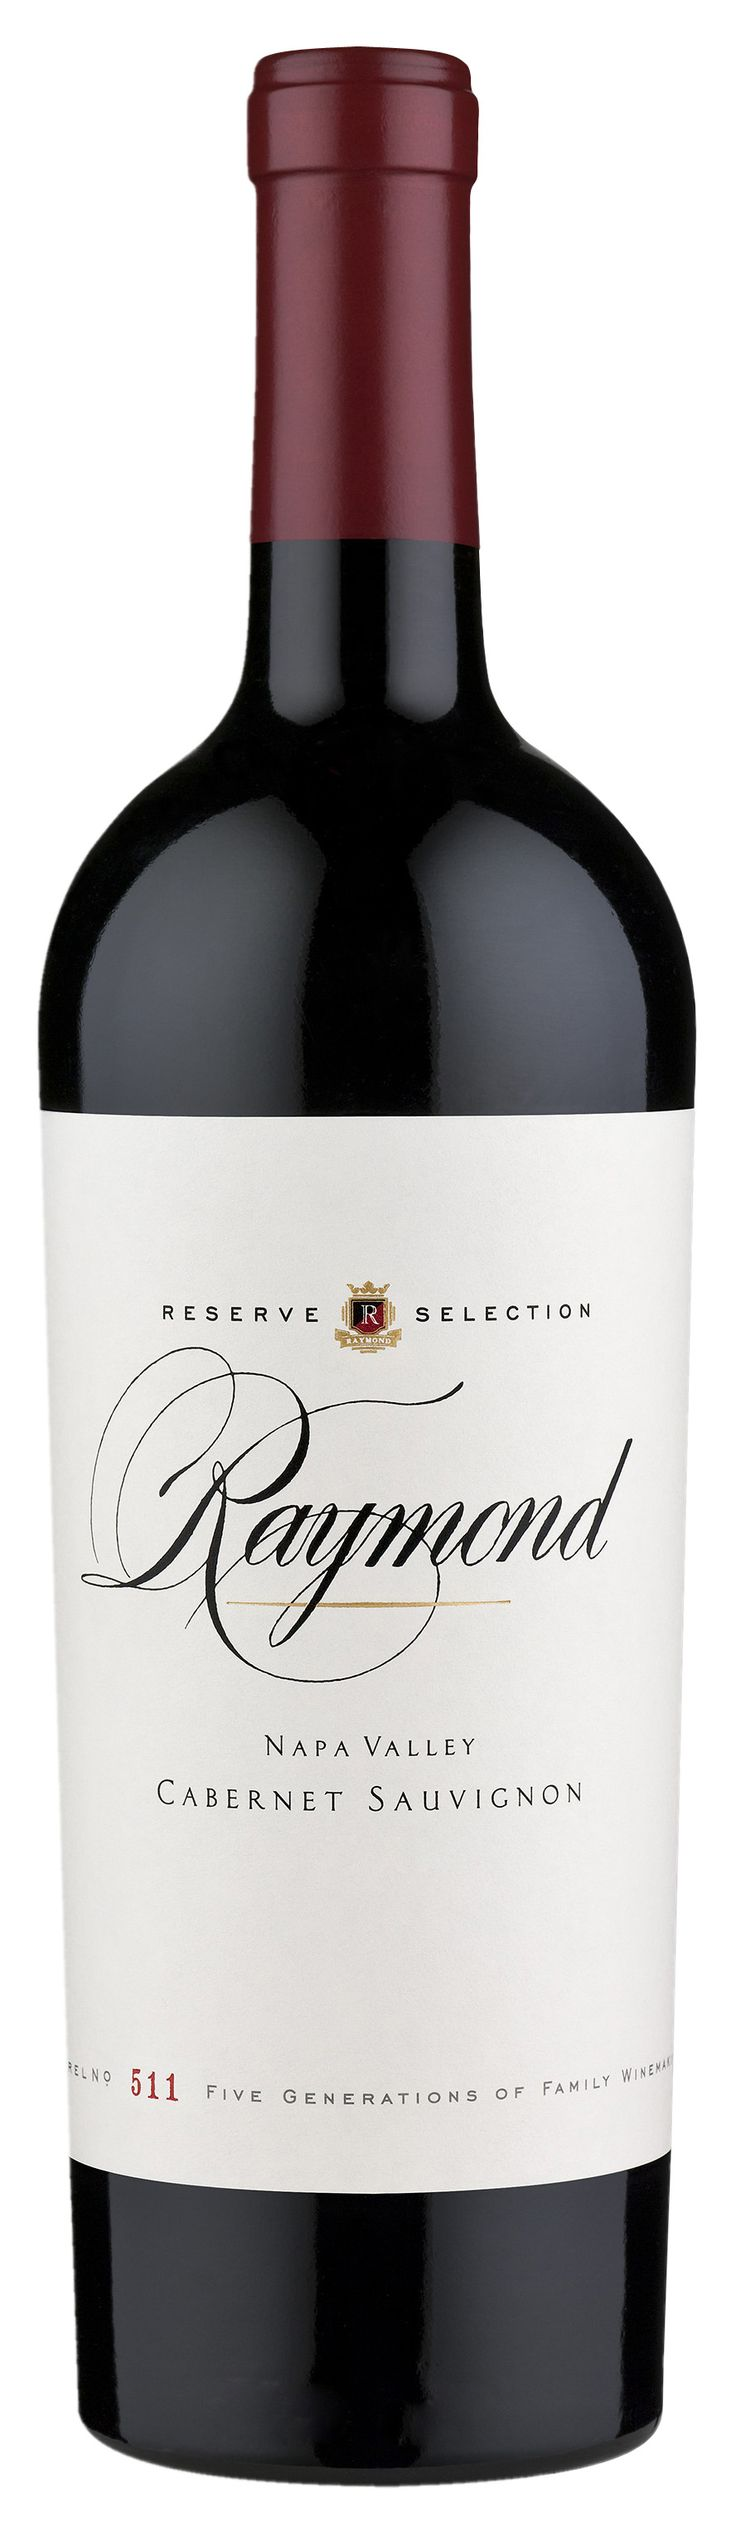 Raymond Cabernet Sauvignon. A great example of a Napa Cab.